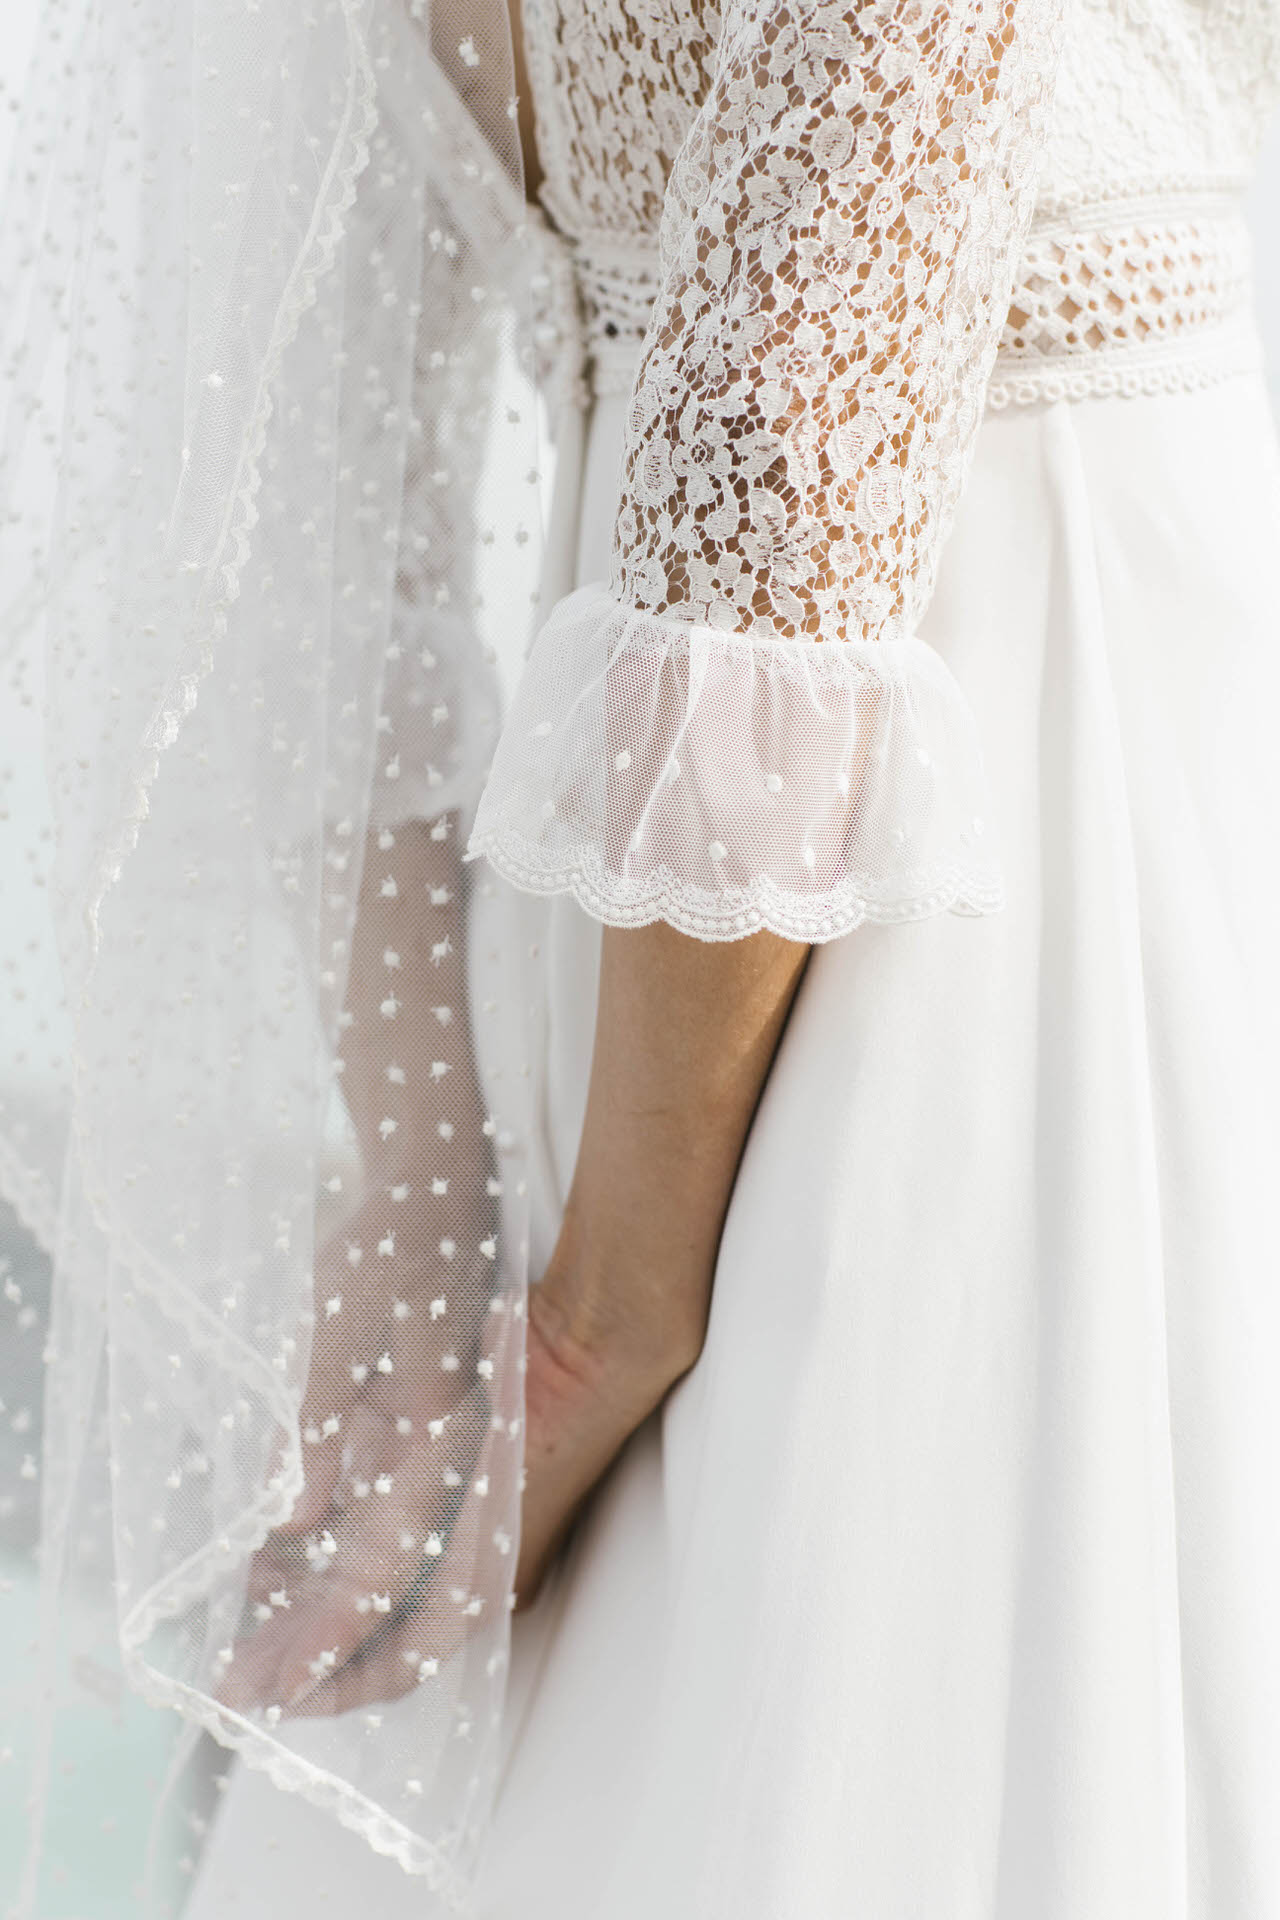 robe Pierrette - collection mariée 2019 - Lorafolk Paris